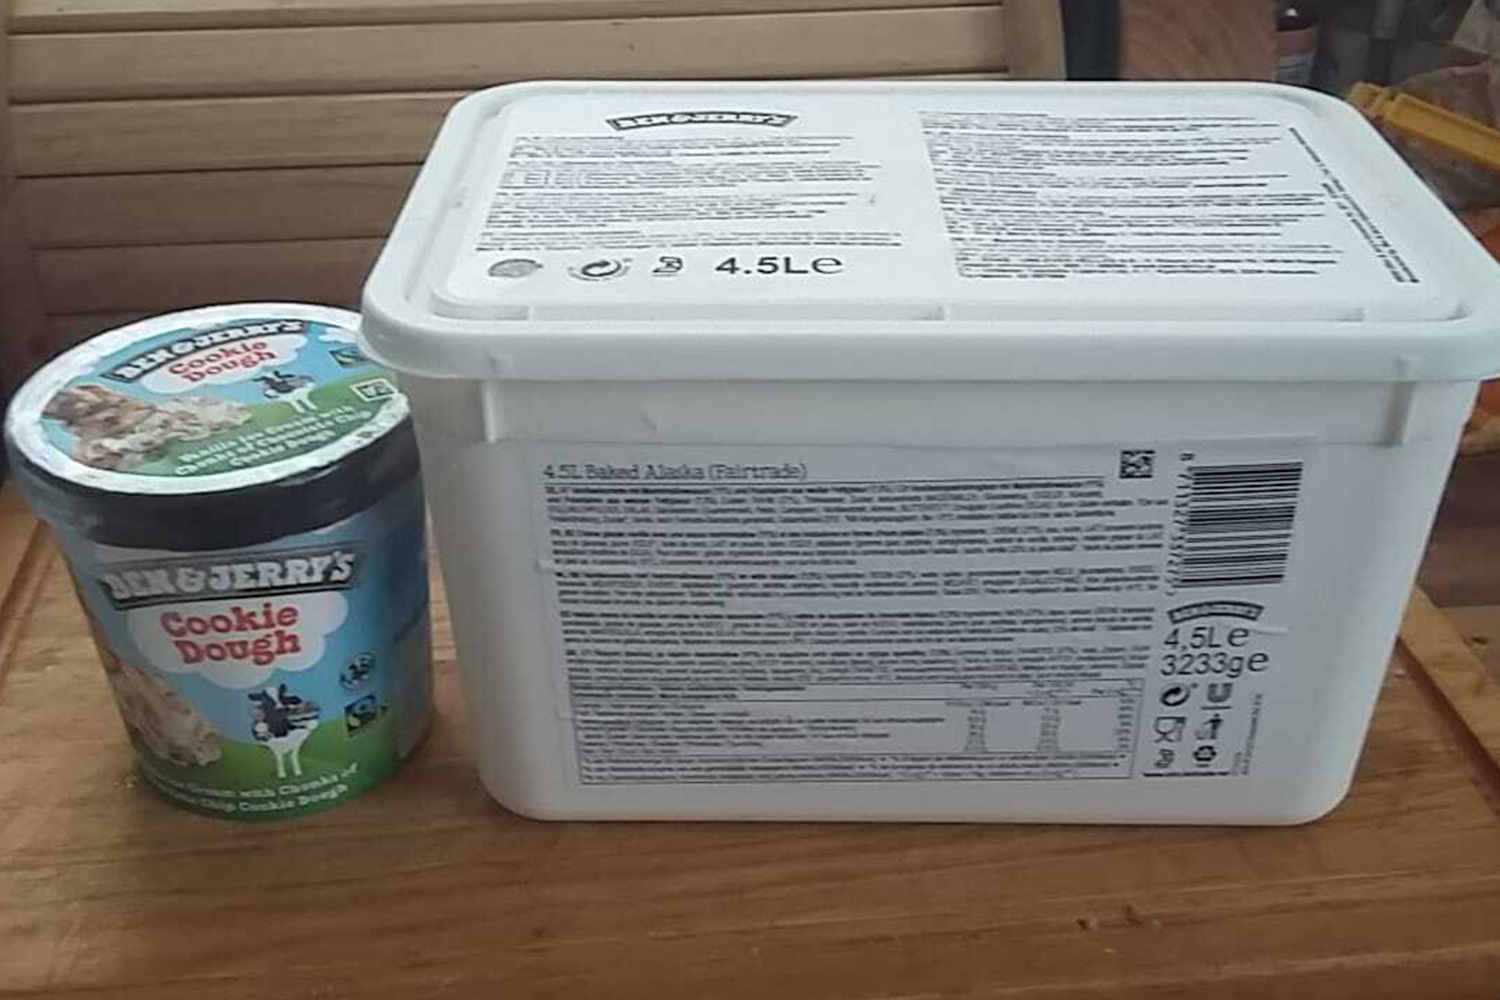 The tubs of ice cream are almost 10 times bigger than a normal tub